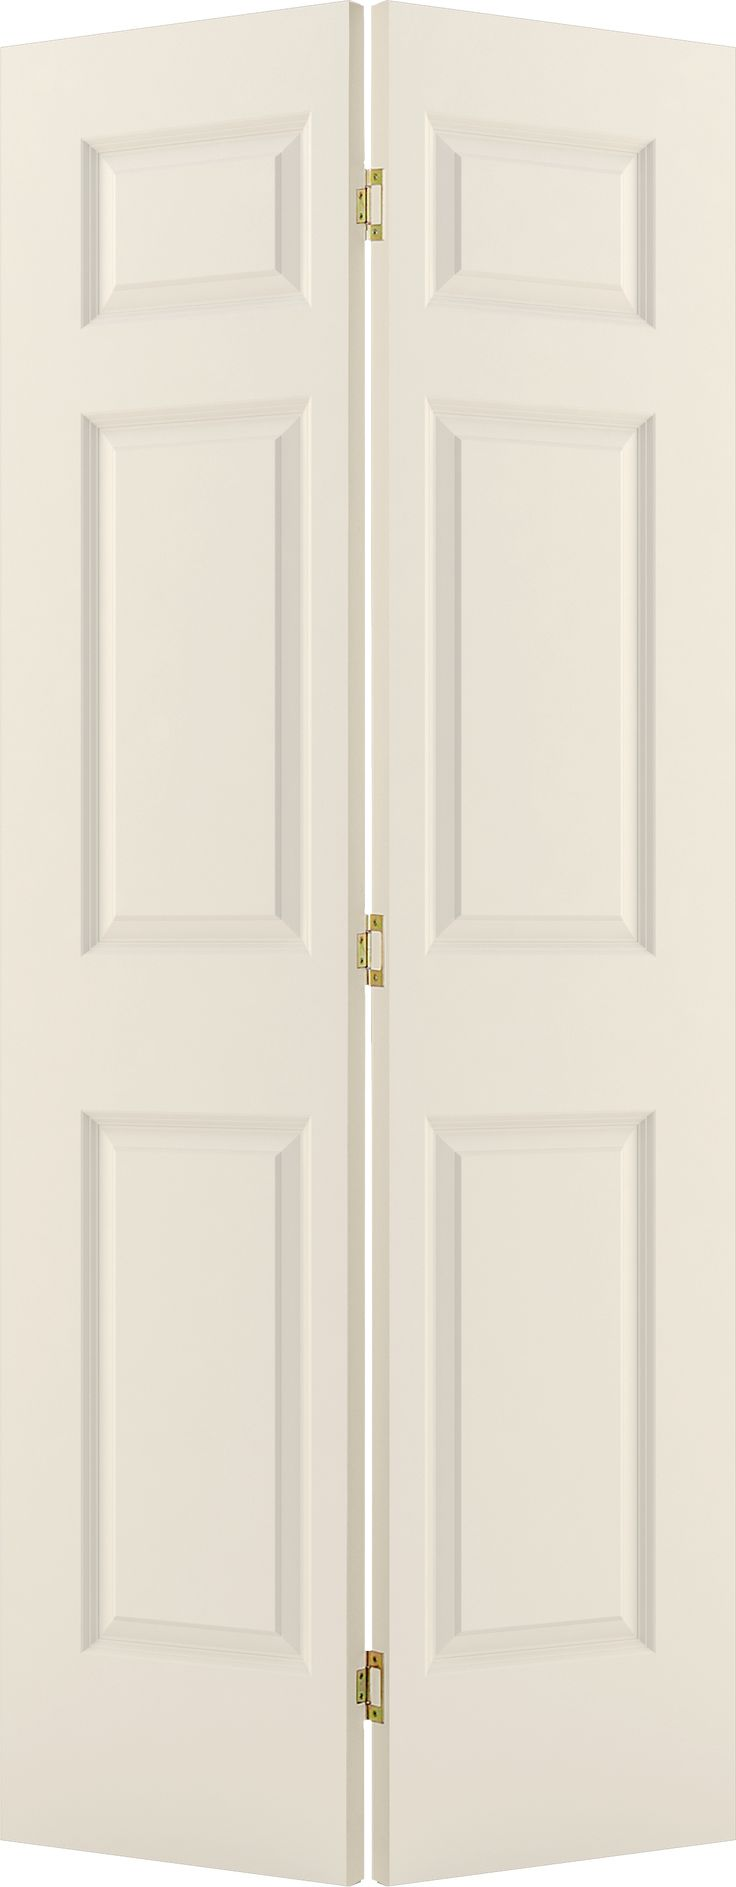 Molded Wood Composite Bifold Interior Door | JELD-WEN Doors